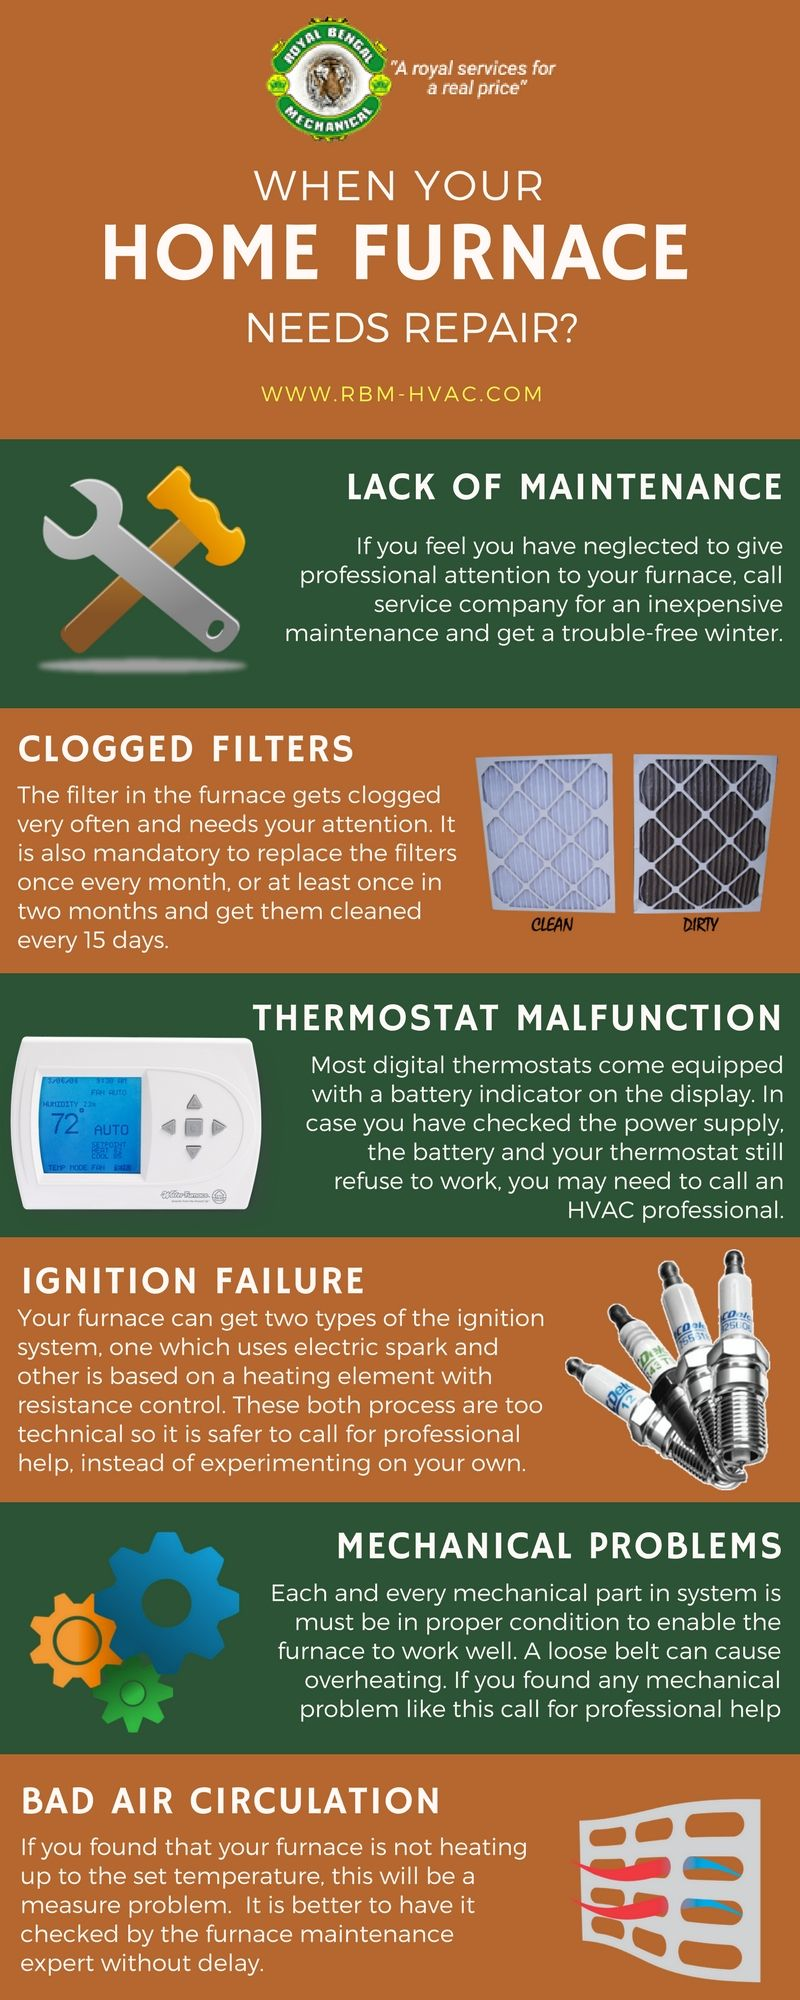 Home gas furnace issues are common. It has issues like